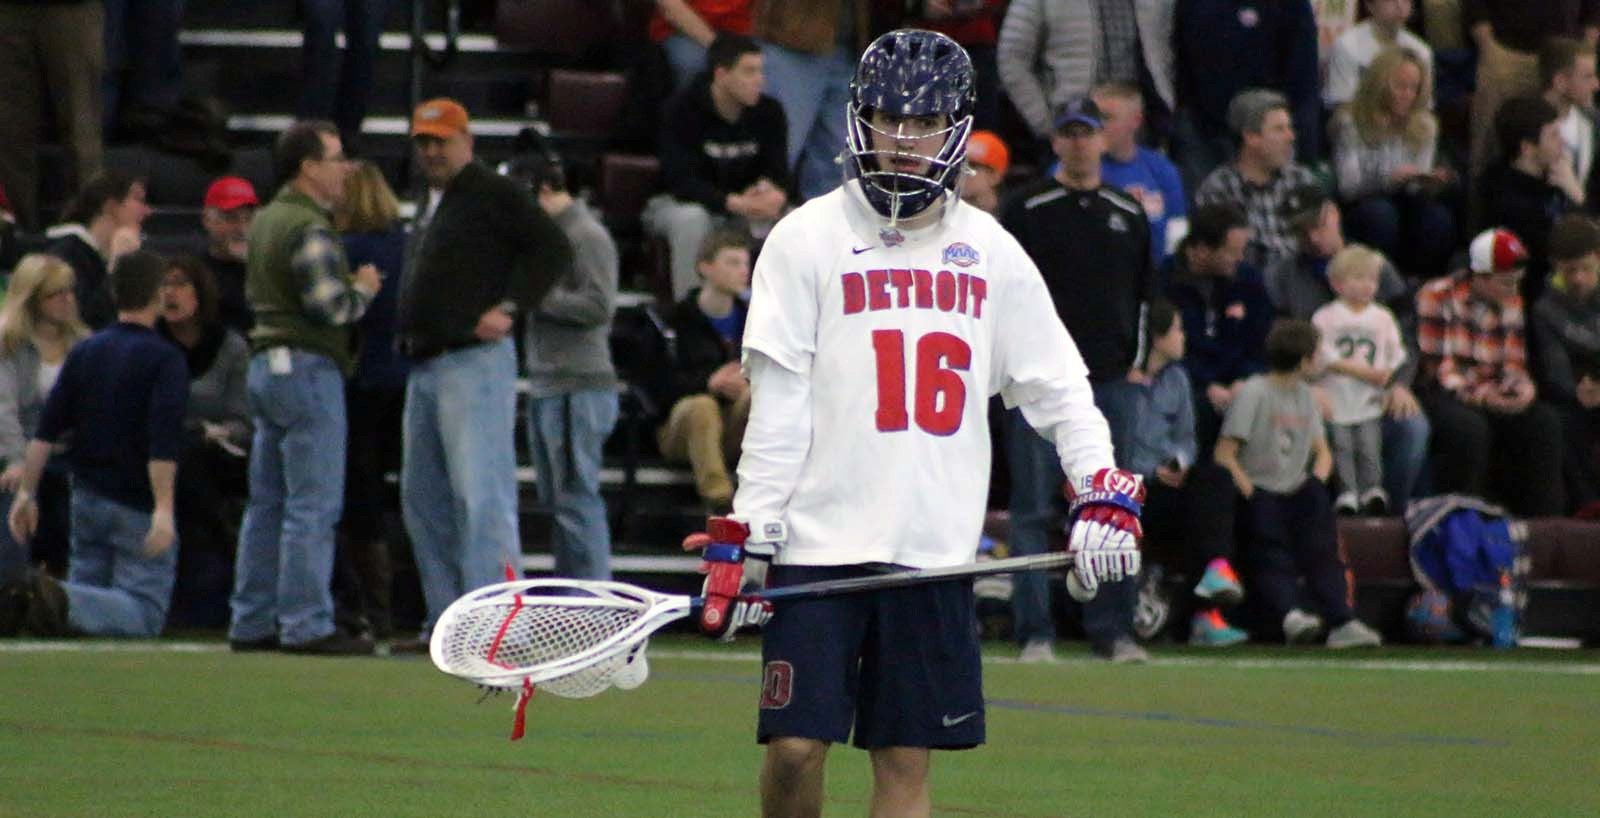 Michael Turnbull - Men's Lacrosse - University of Detroit